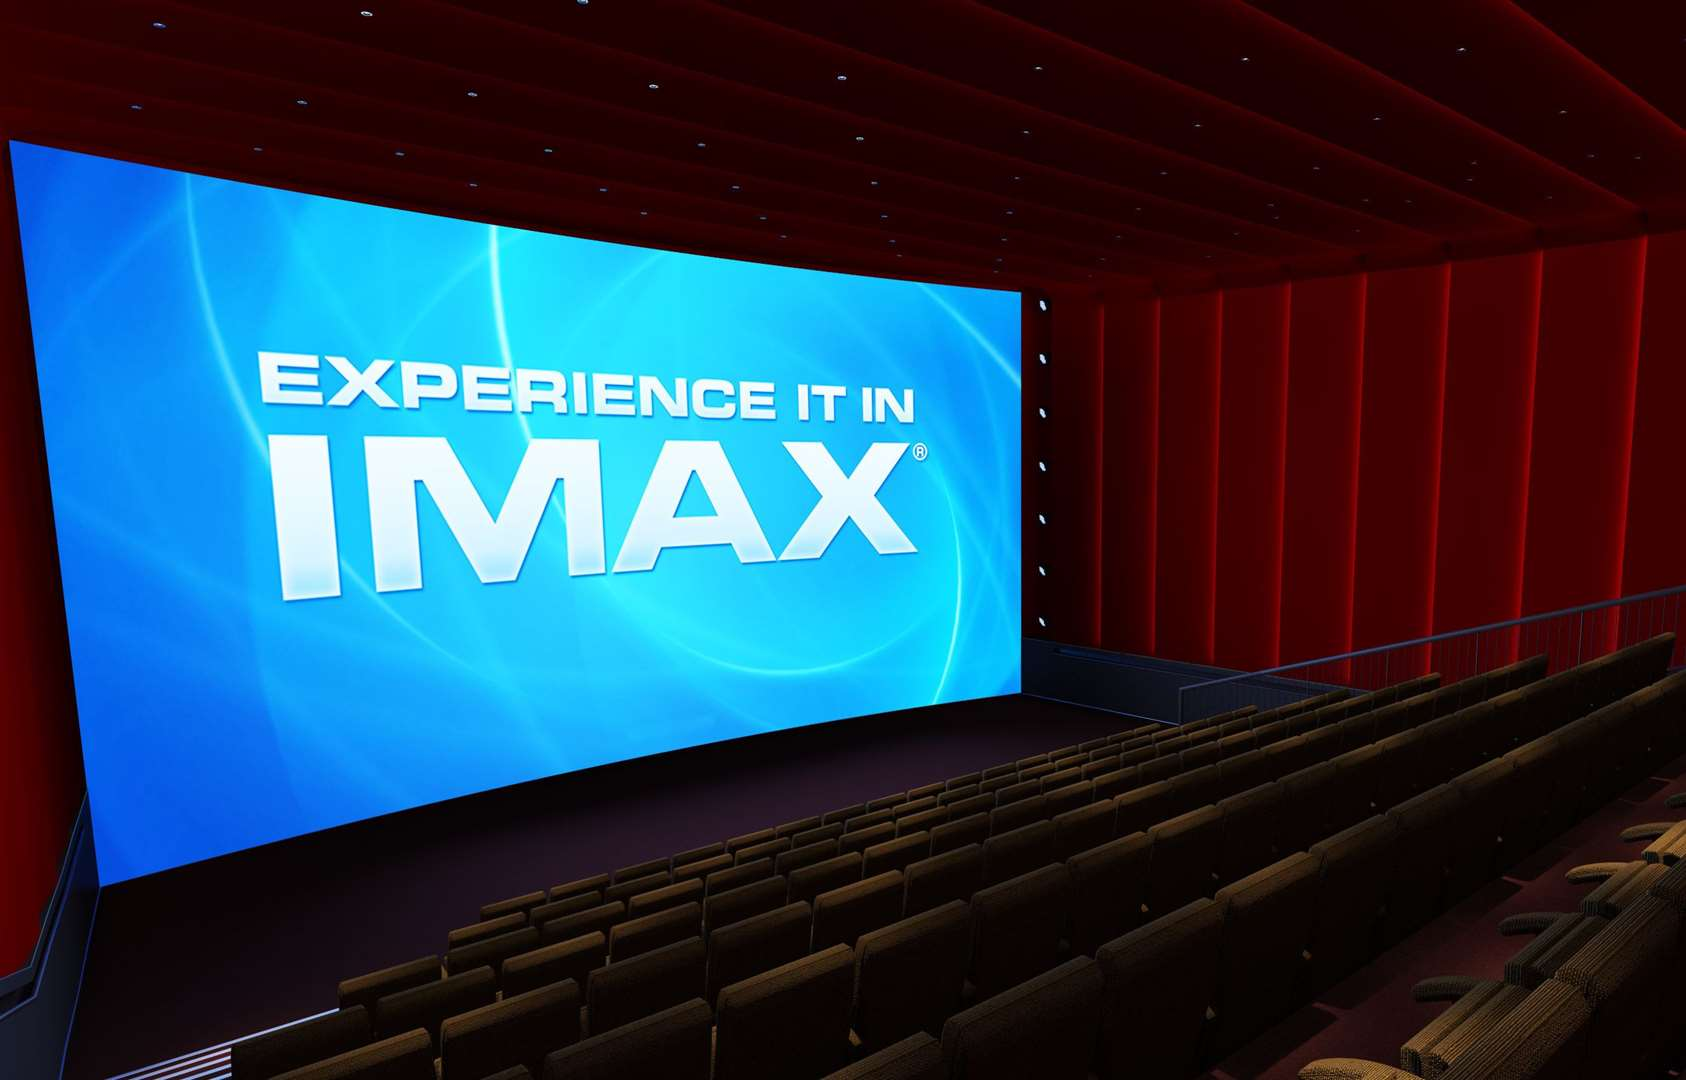 The new IMAX will open in September